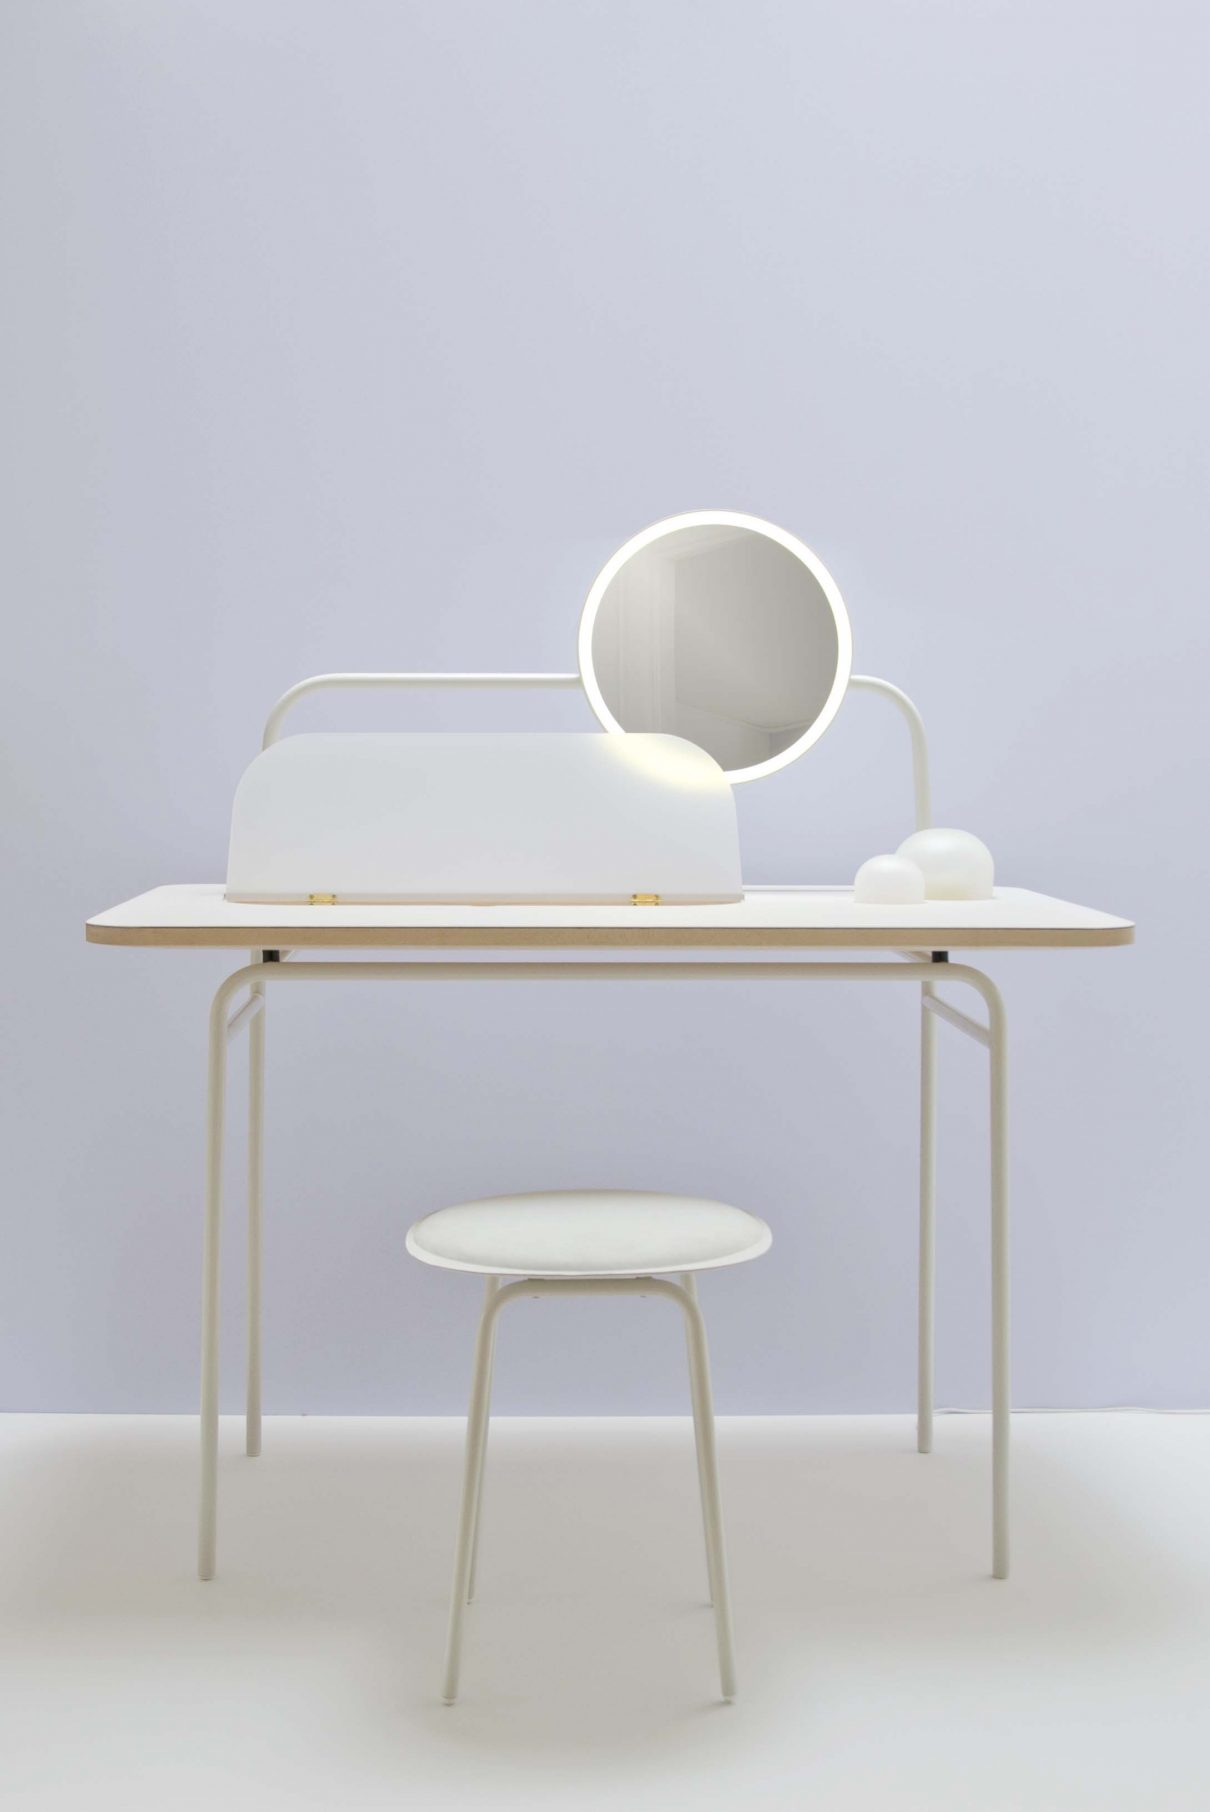 Morning dew dressing table van studio wm gimmii - Kruk voor dressing ...